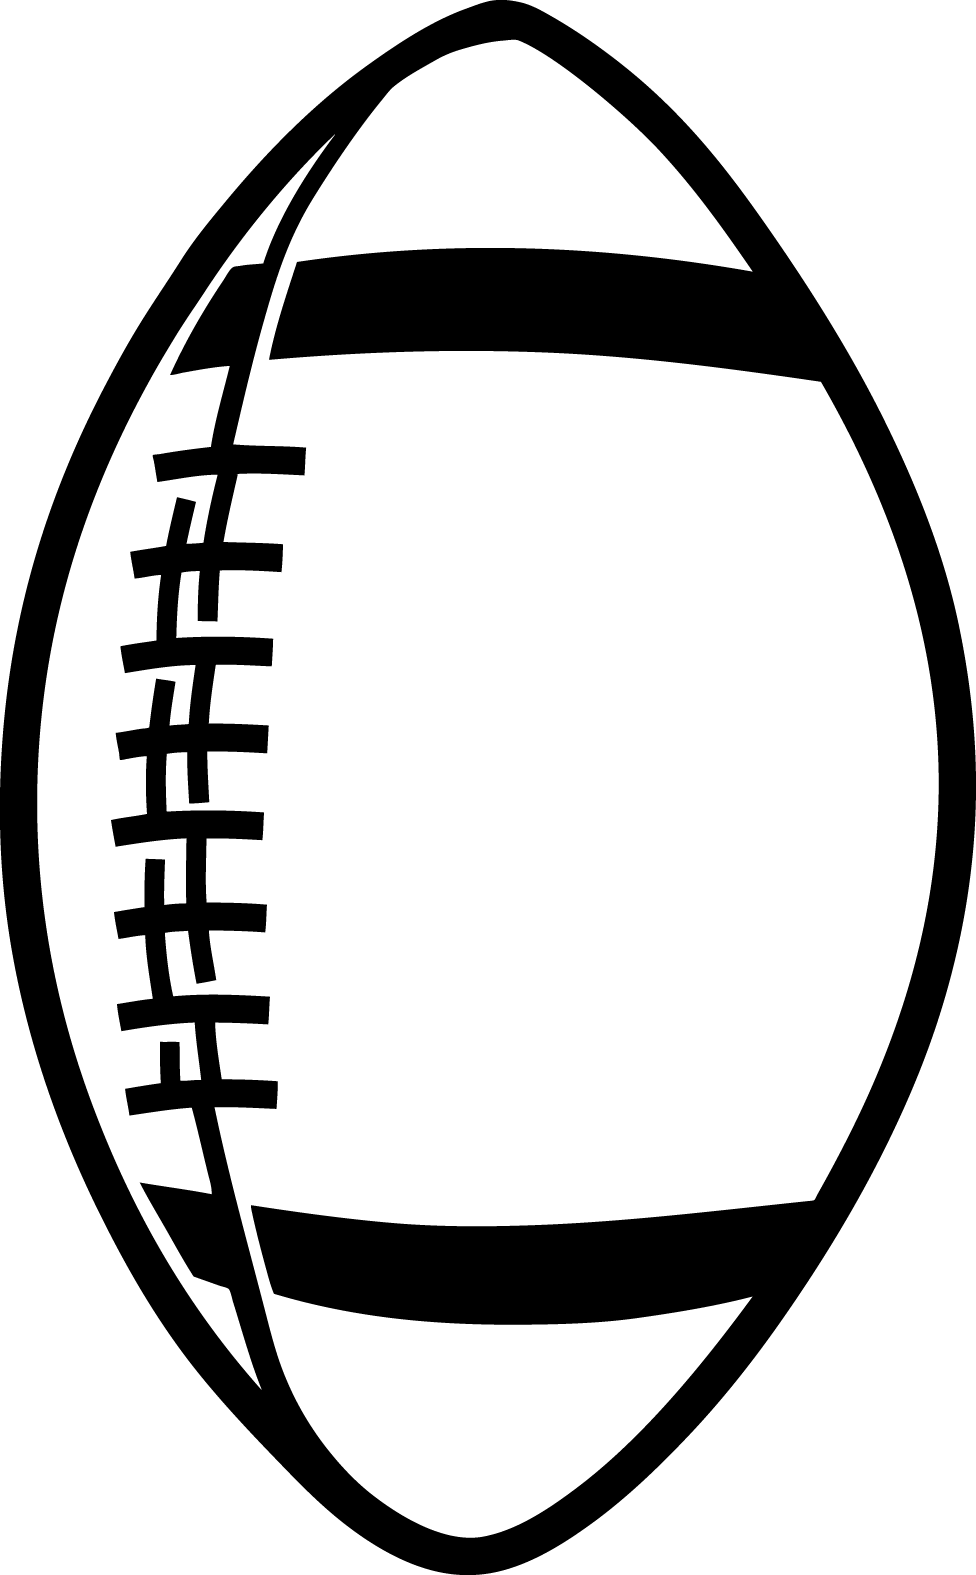 american football outline - photo #16